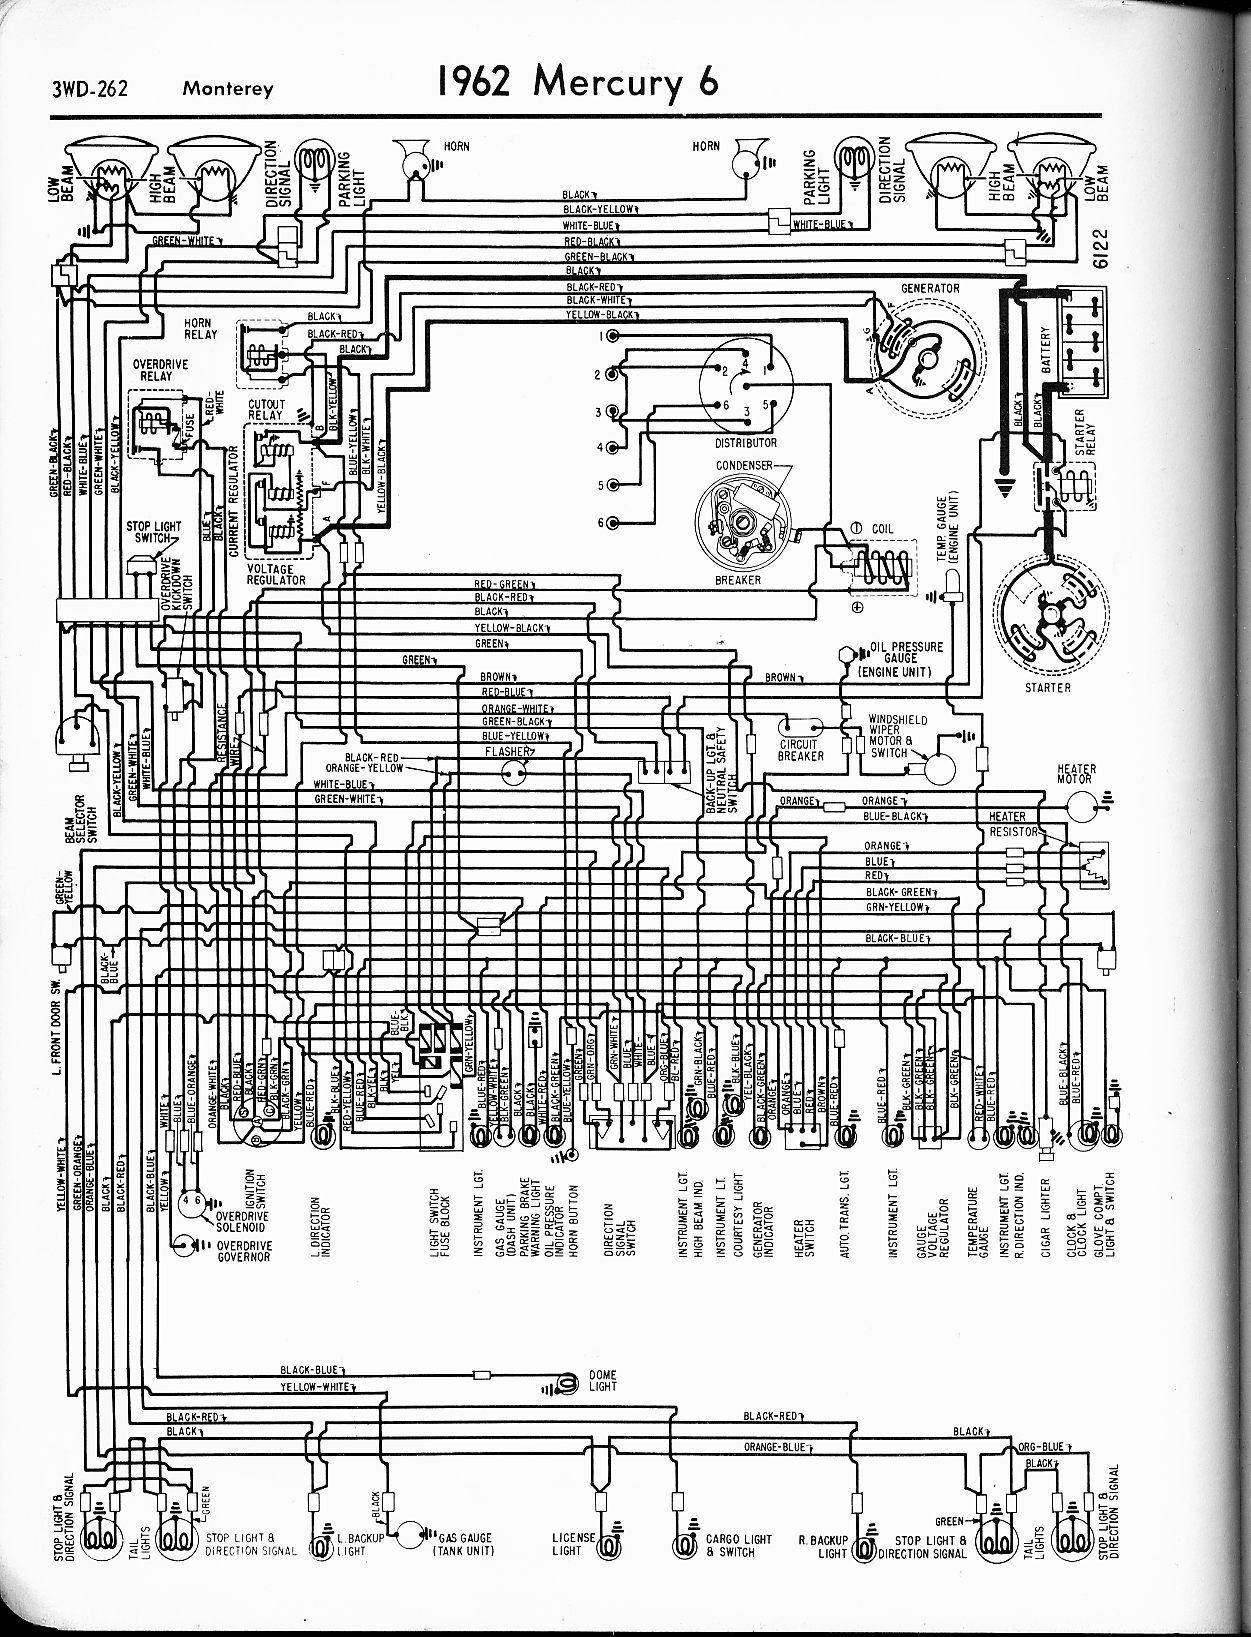 1955 ford fairlane wiring diagram freightliner manual 1962 fuse box data thunderbird e books 1972